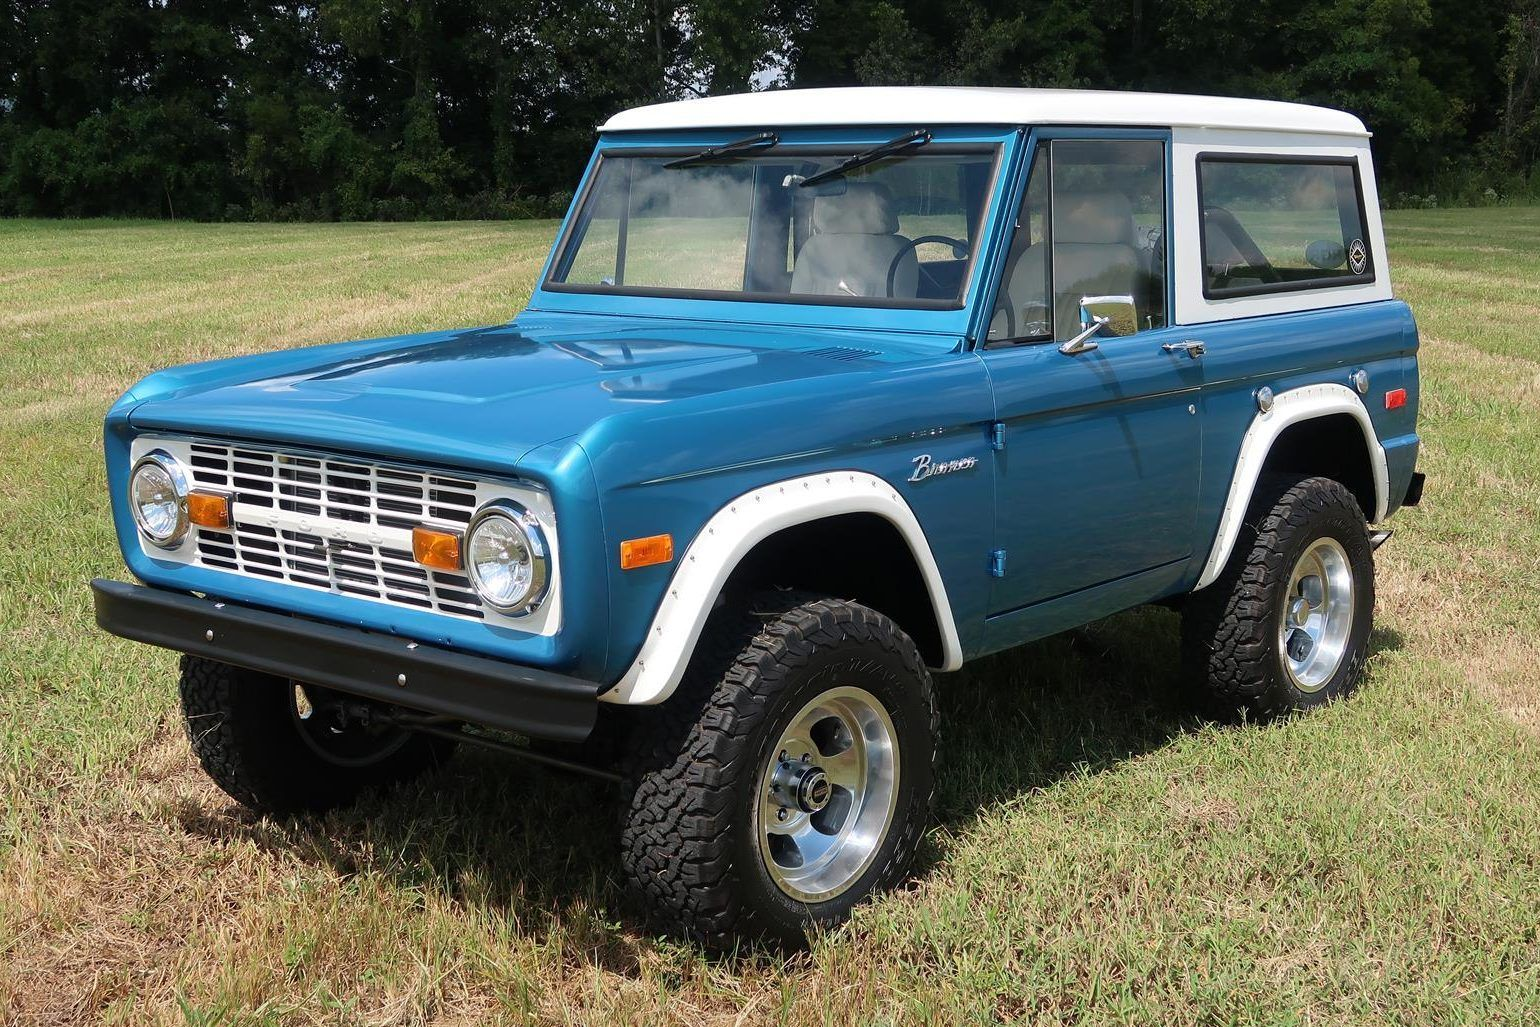 1970 Ford Bronco Dreamcars In 2020 Klassische Autos Ford Bronco Oldtimer